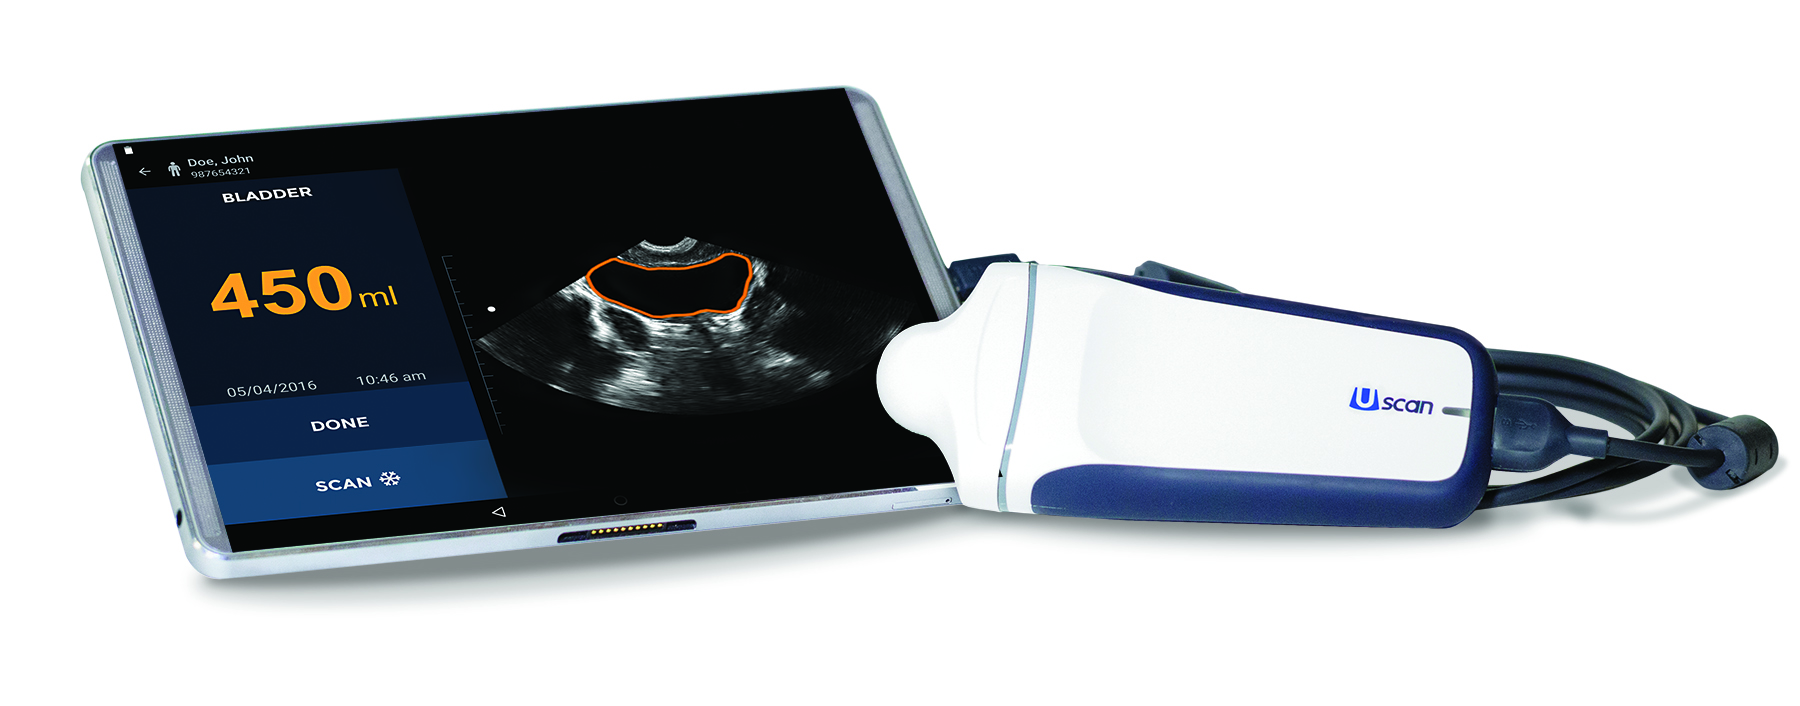 Signostics' Uscan intelligent ultrasound tool